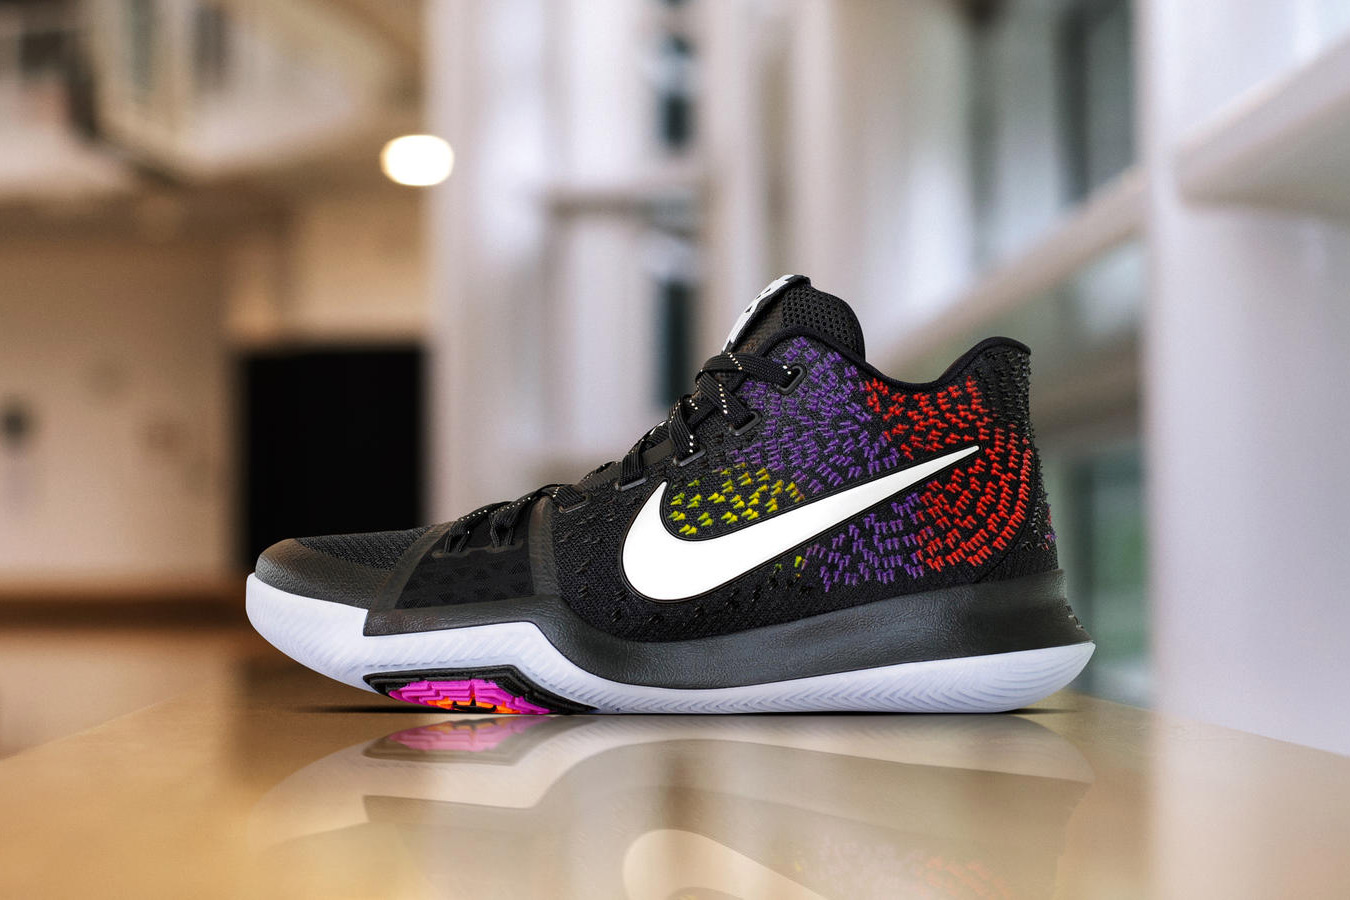 b9ade78cb37 ... aliexpress following the launch of the black ice samurai and warning  editions the nike kyrie 3